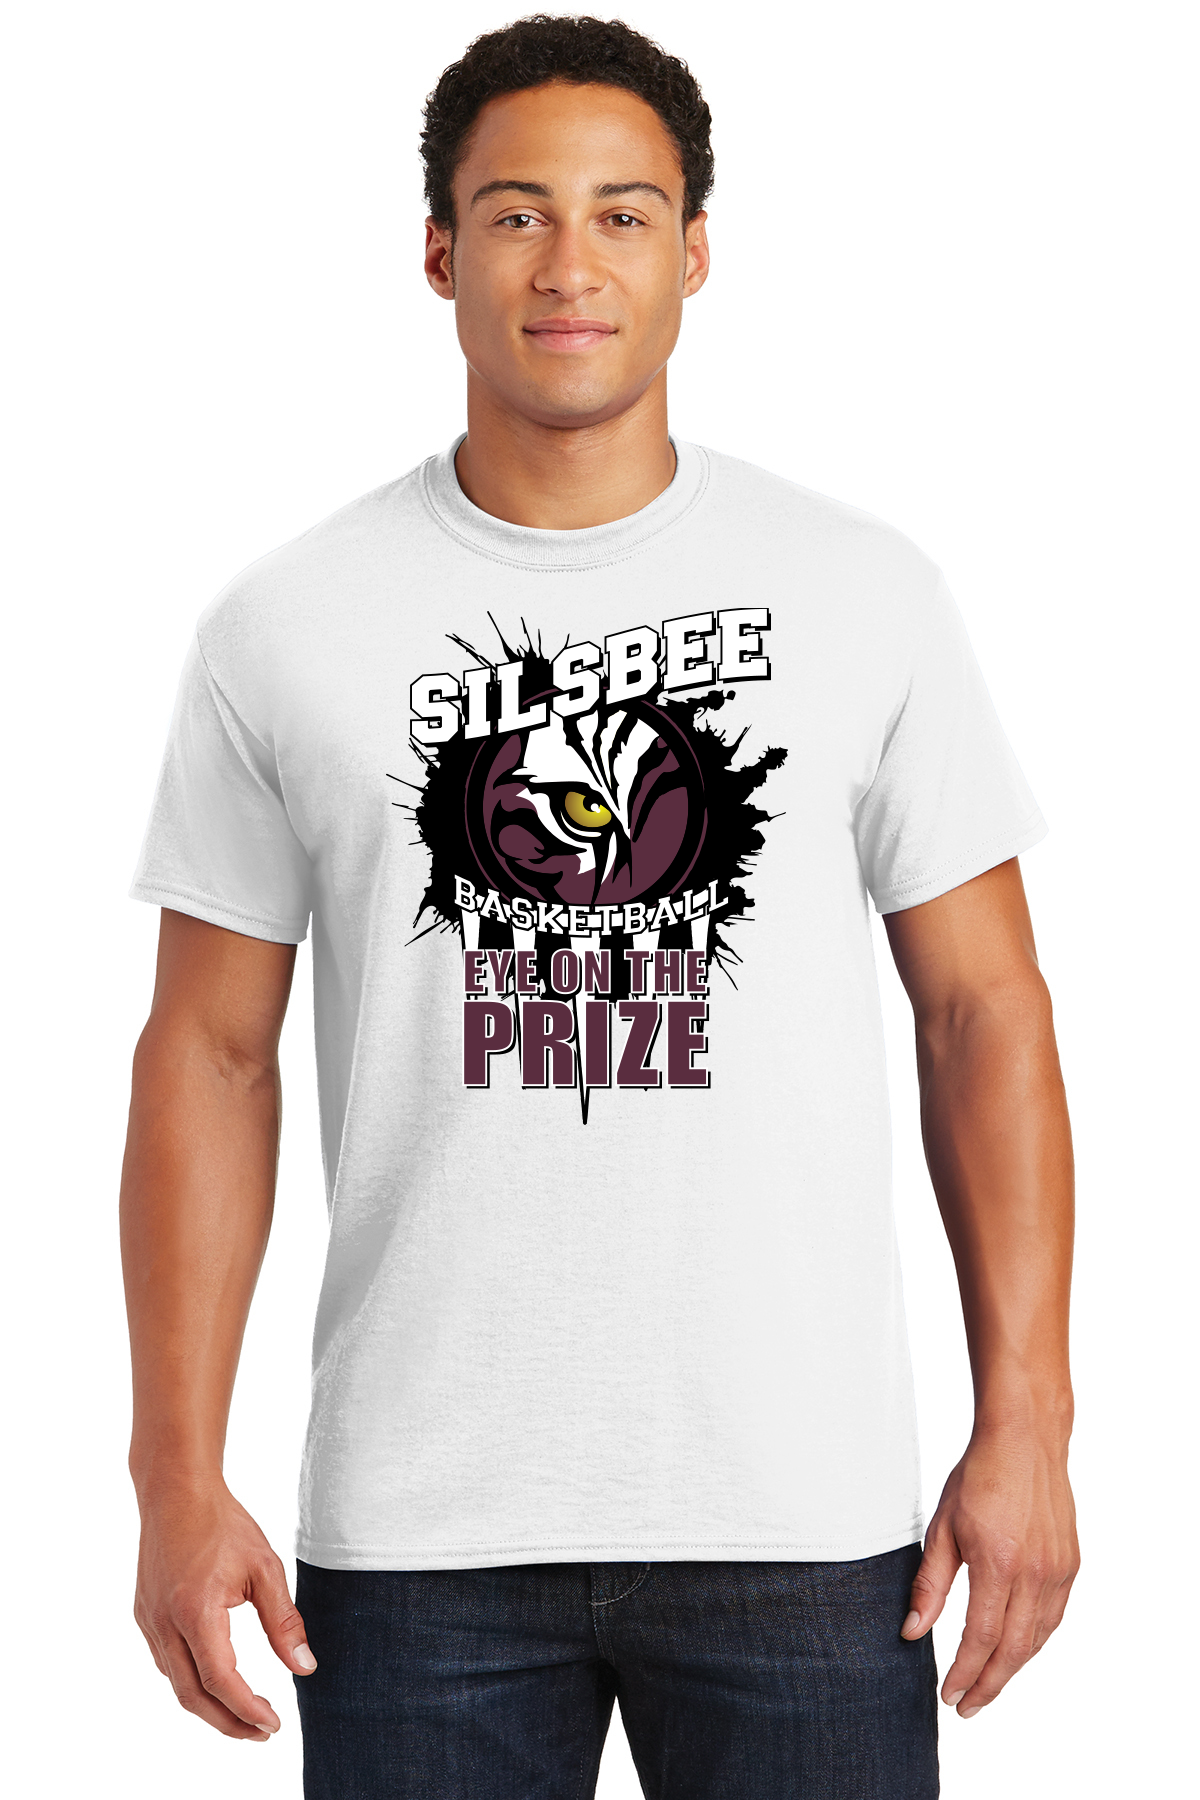 2019 Silsbee High School Basketball Adult T-Shirt/Hoodie